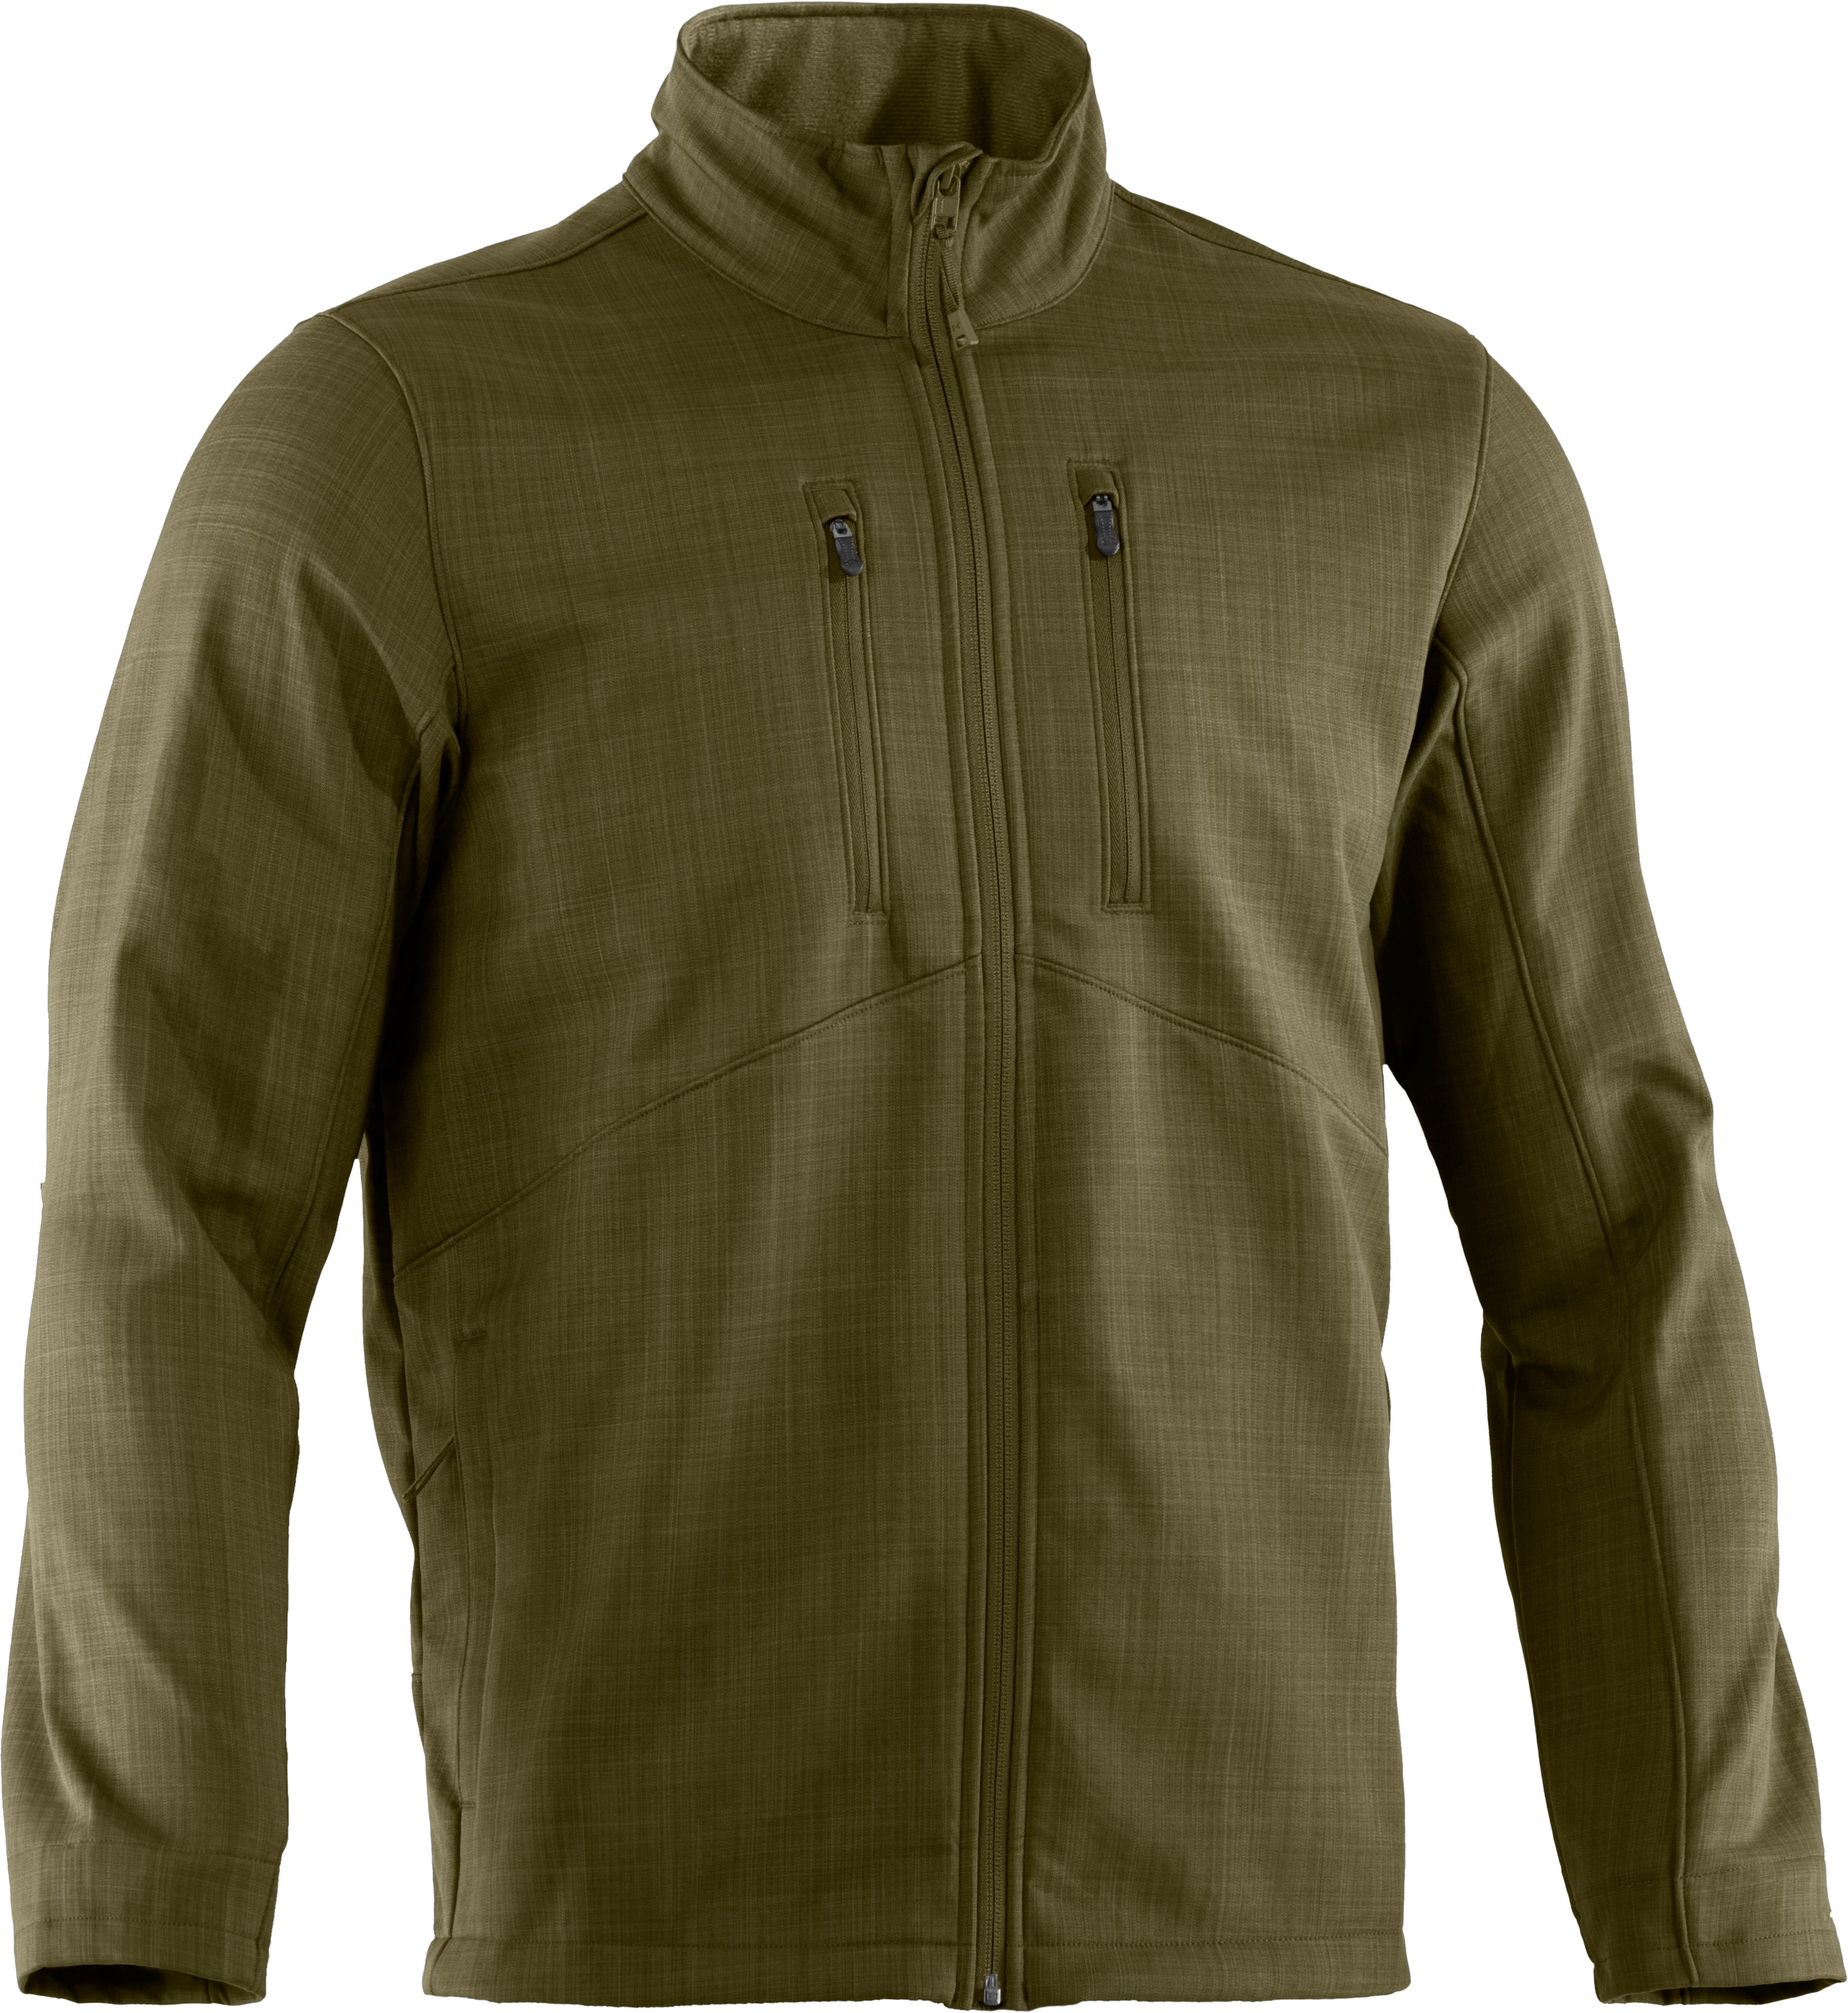 Men's ColdGear® Infrared Radar Softshell, GREENHEAD